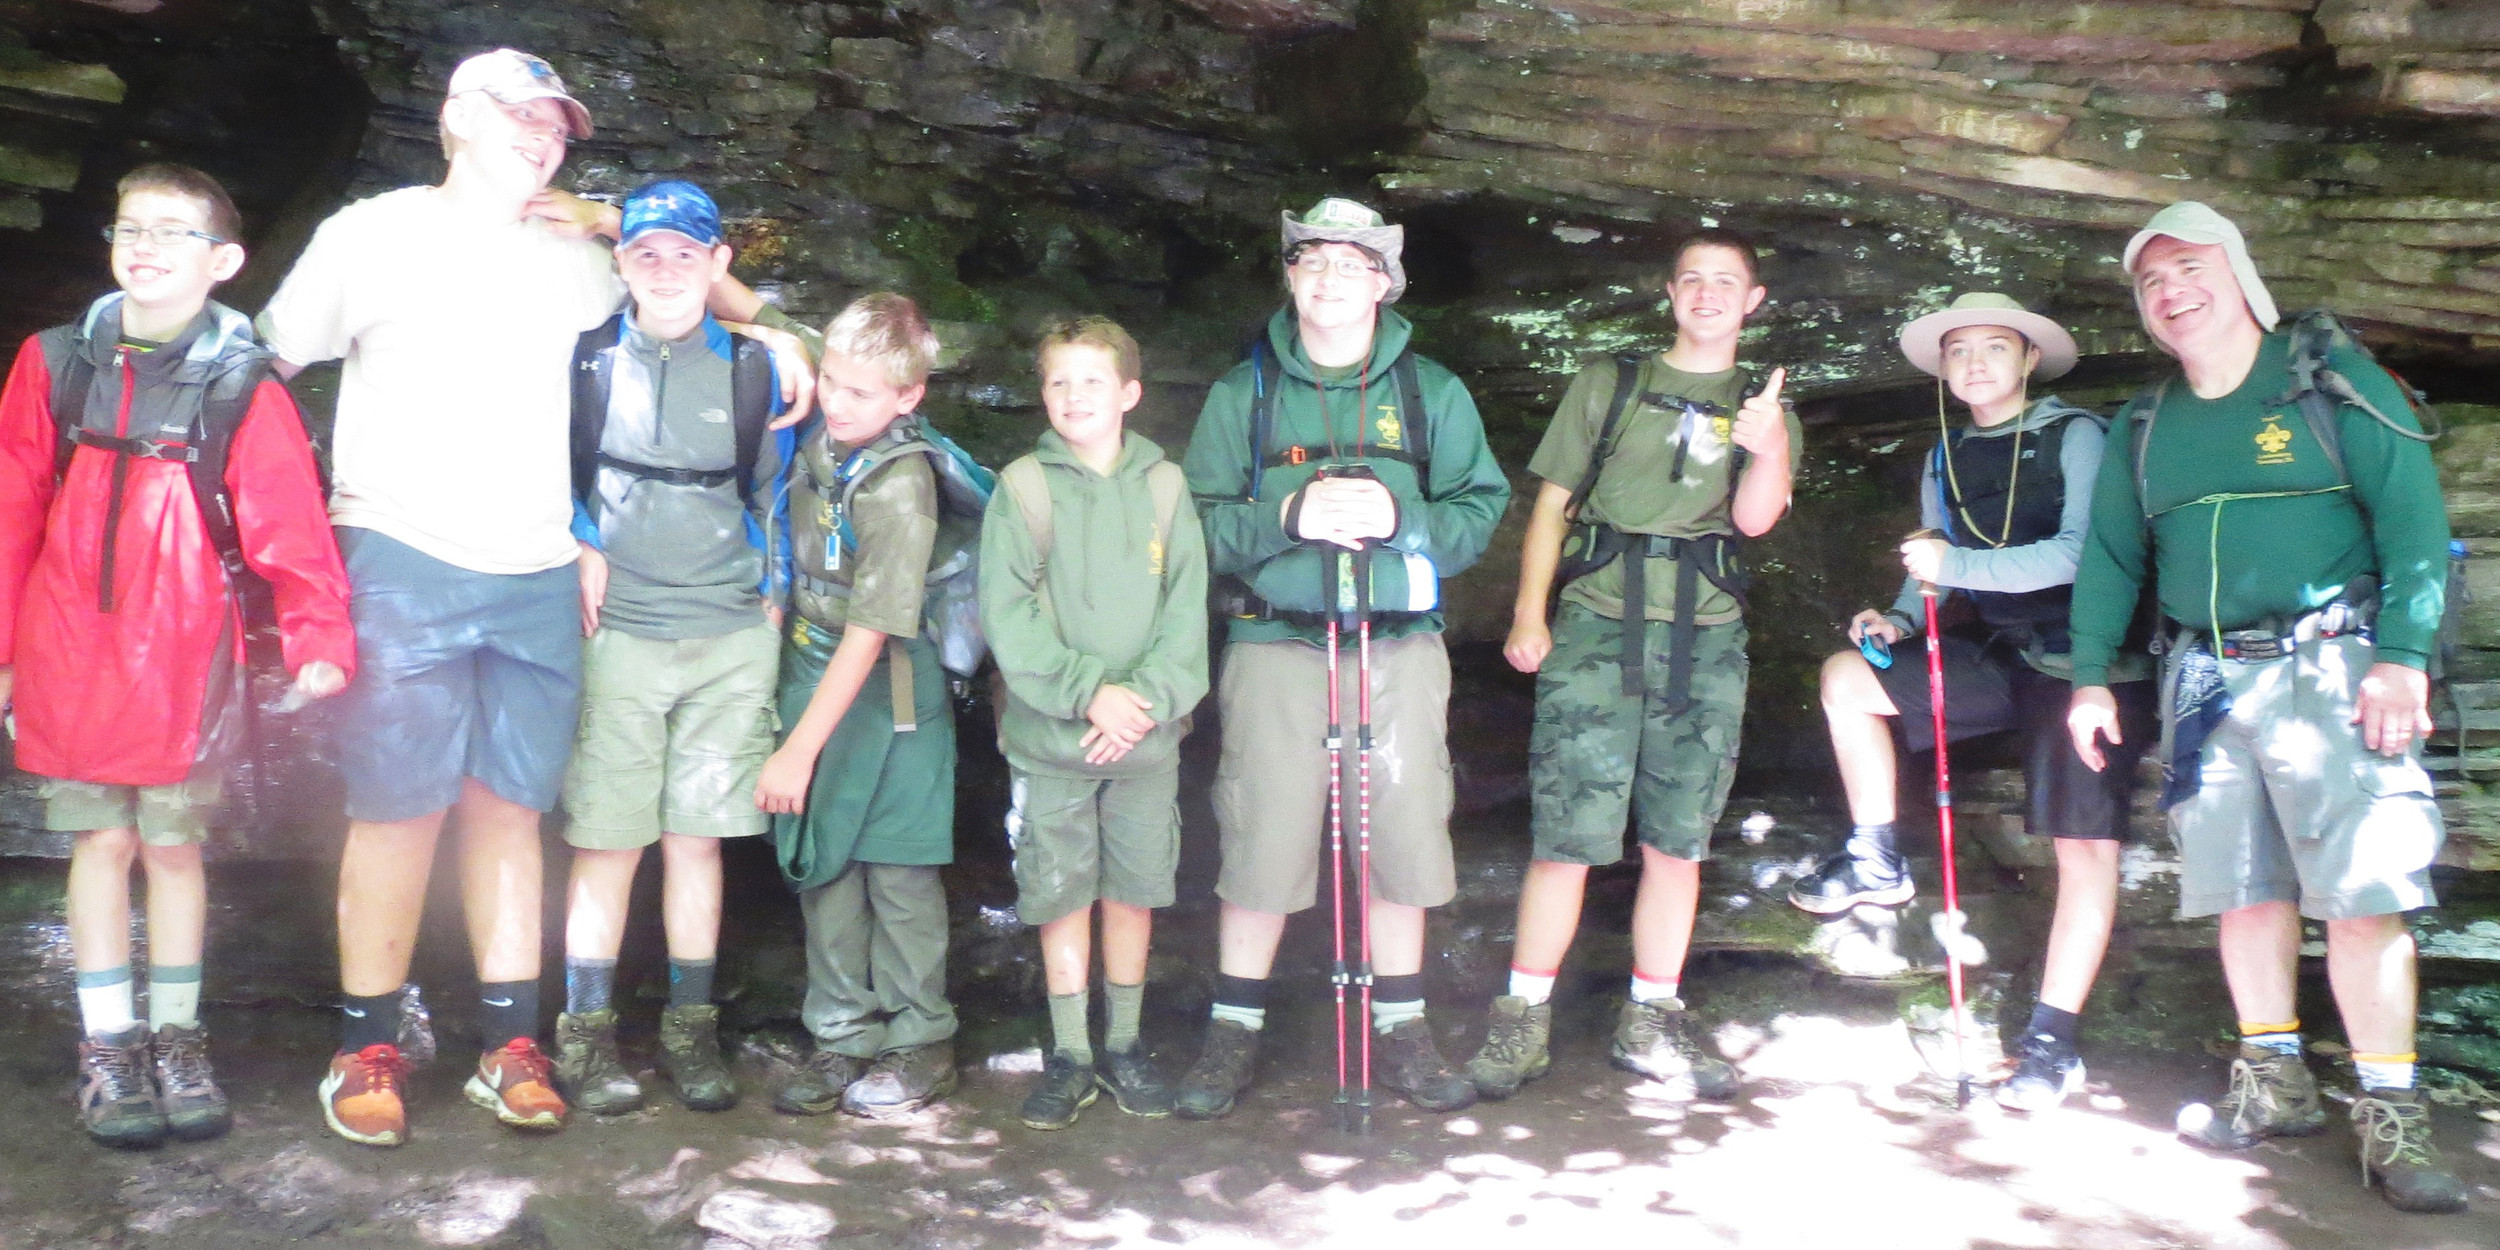 Joe Myers, Mason Swartz, Luke Spangenberg, Leo Nissley, Bryson Harris, Kyle Hoyt, Ben Spangenberg, Mason Swartz and Scout Master Kevin Little stand before rock formations that were compressed by glaciers thousands of years ago.